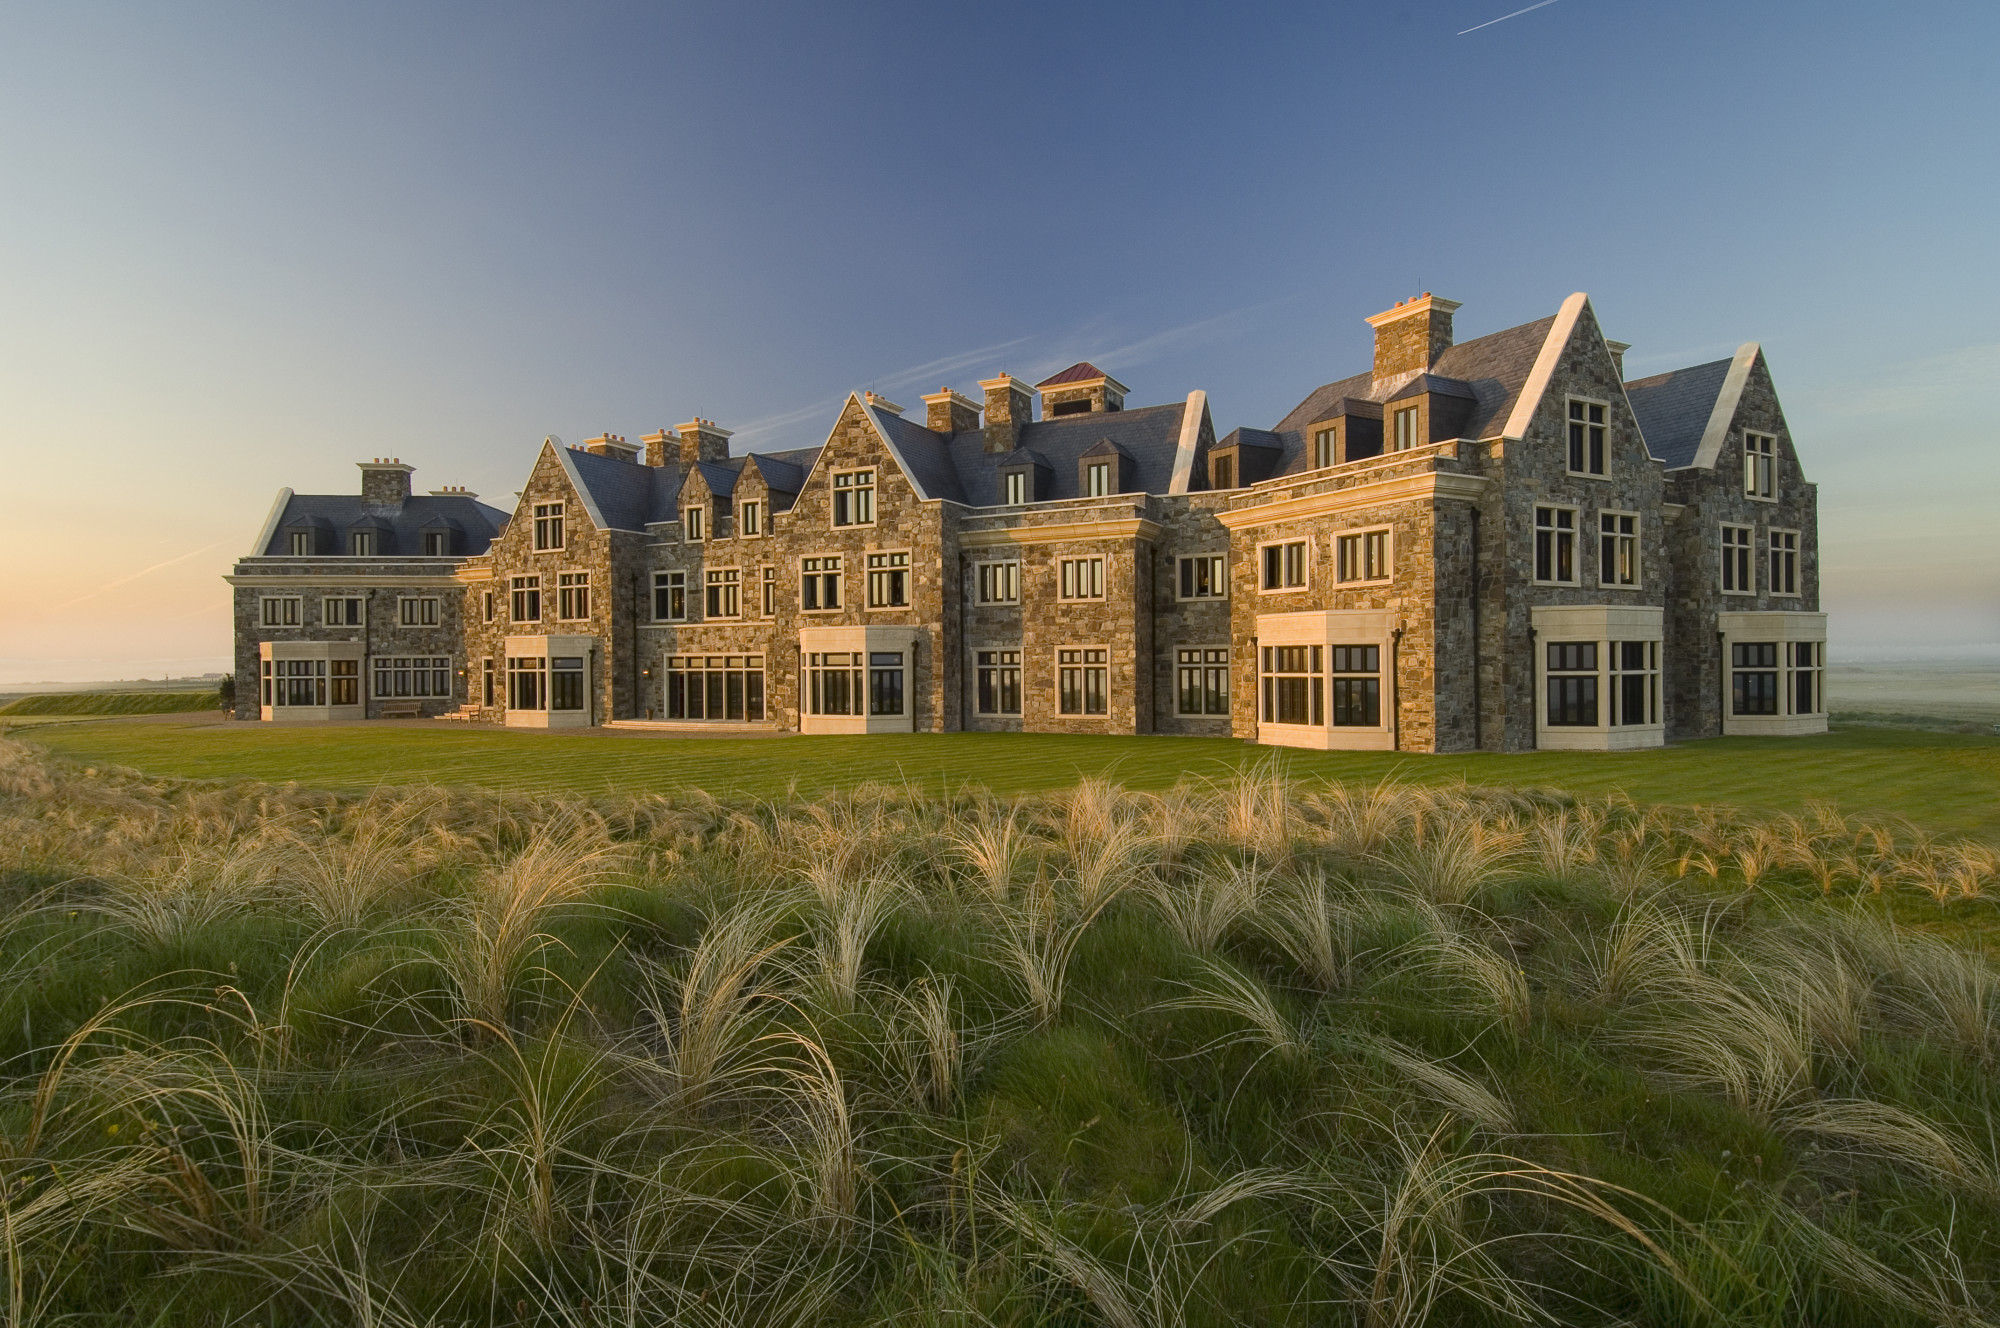 Doonbeg Lodge - Tourism & Leisure Construction